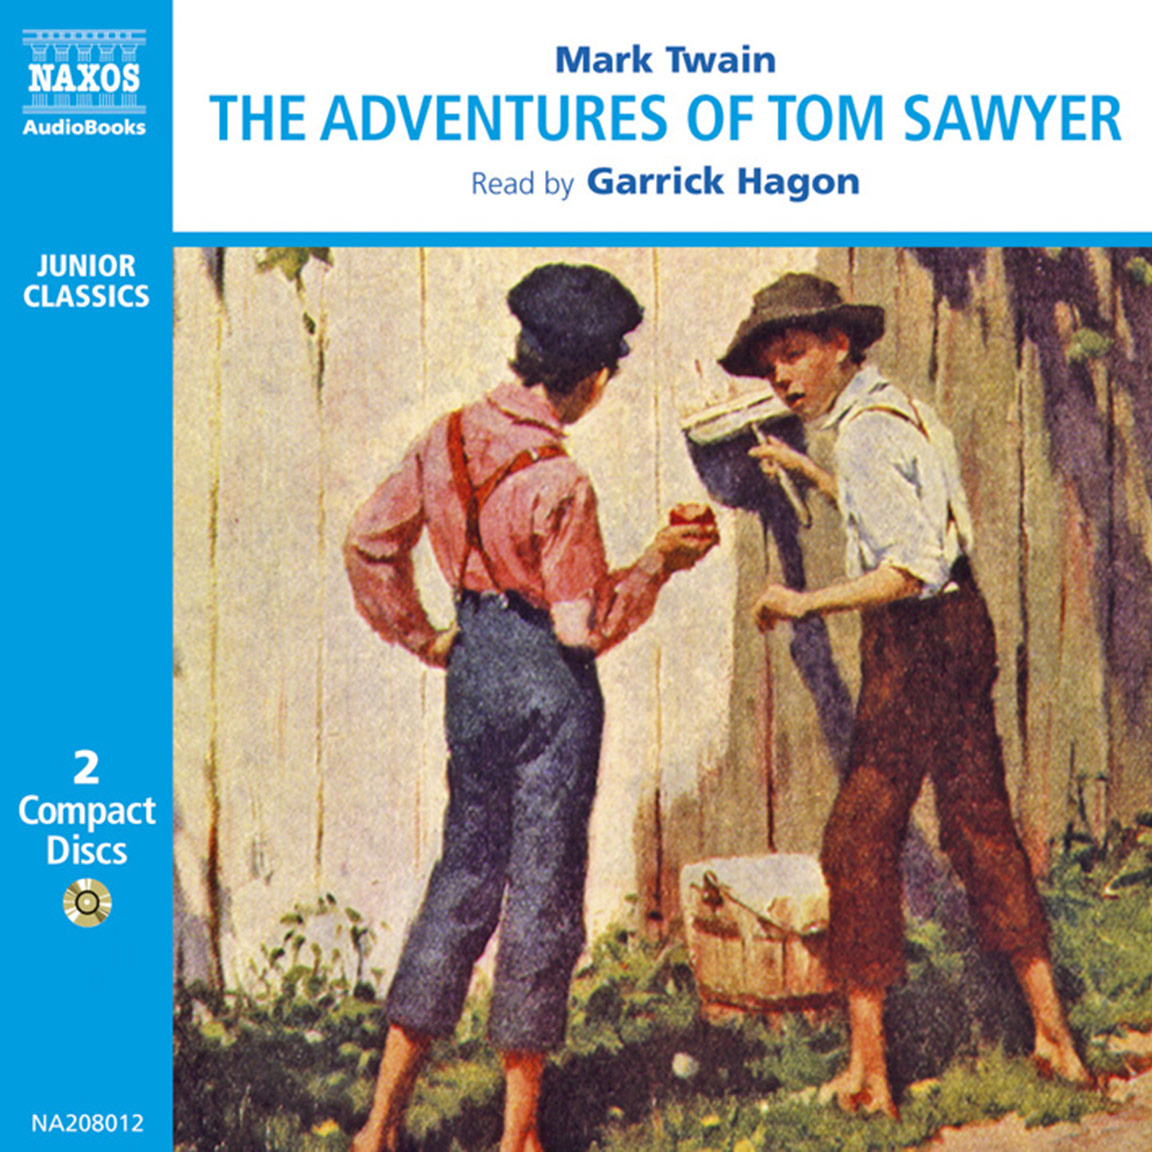 tom sawyer essay conclusion Continue for 19 more pages » • join now to read essay the adventures of tom sawyer and other term papers or research documents.